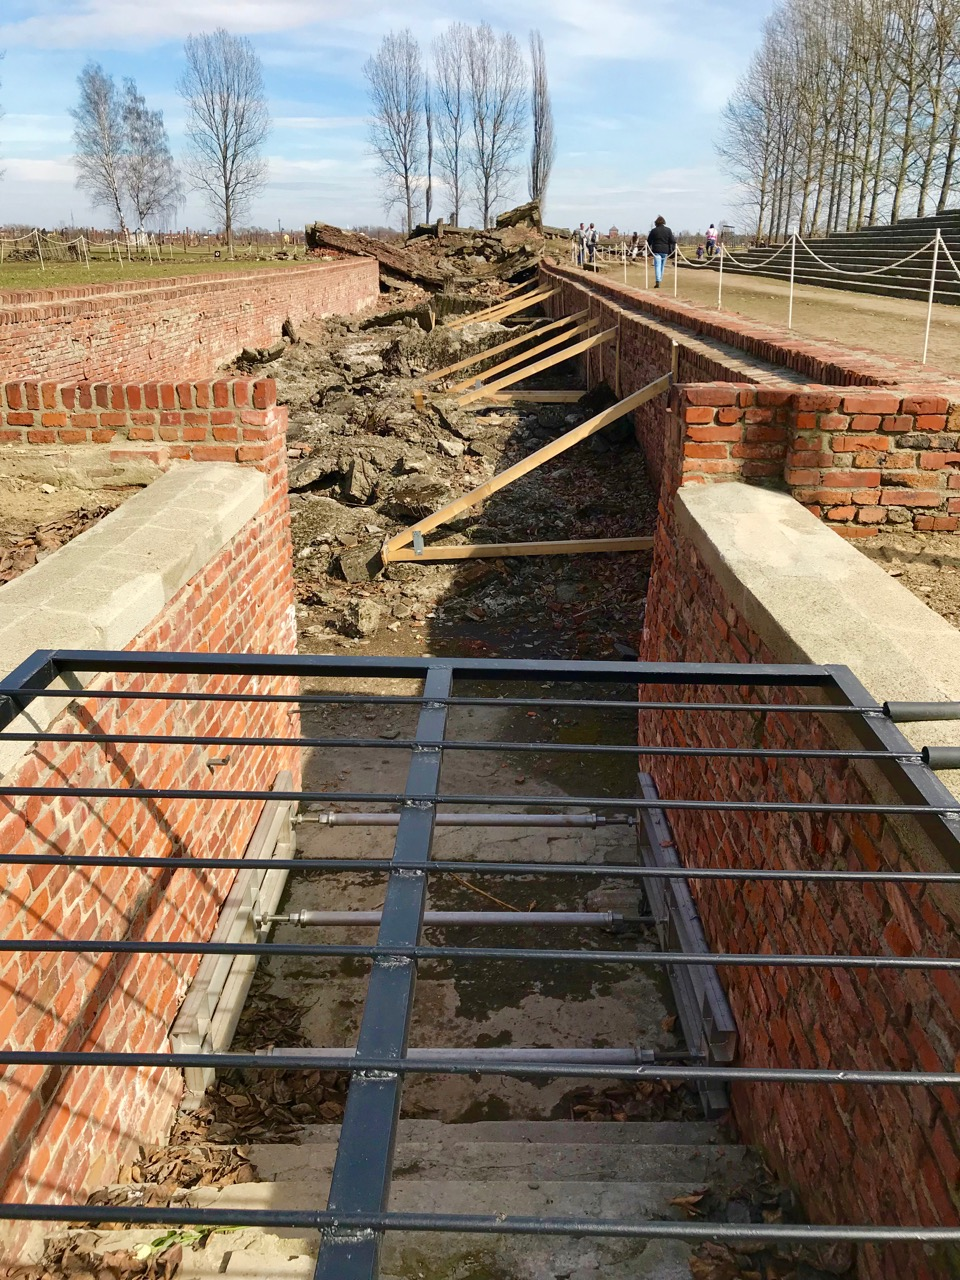 Rubble left behind after Nazis attempted to destroy a Birkenau gas chamber and crematorium